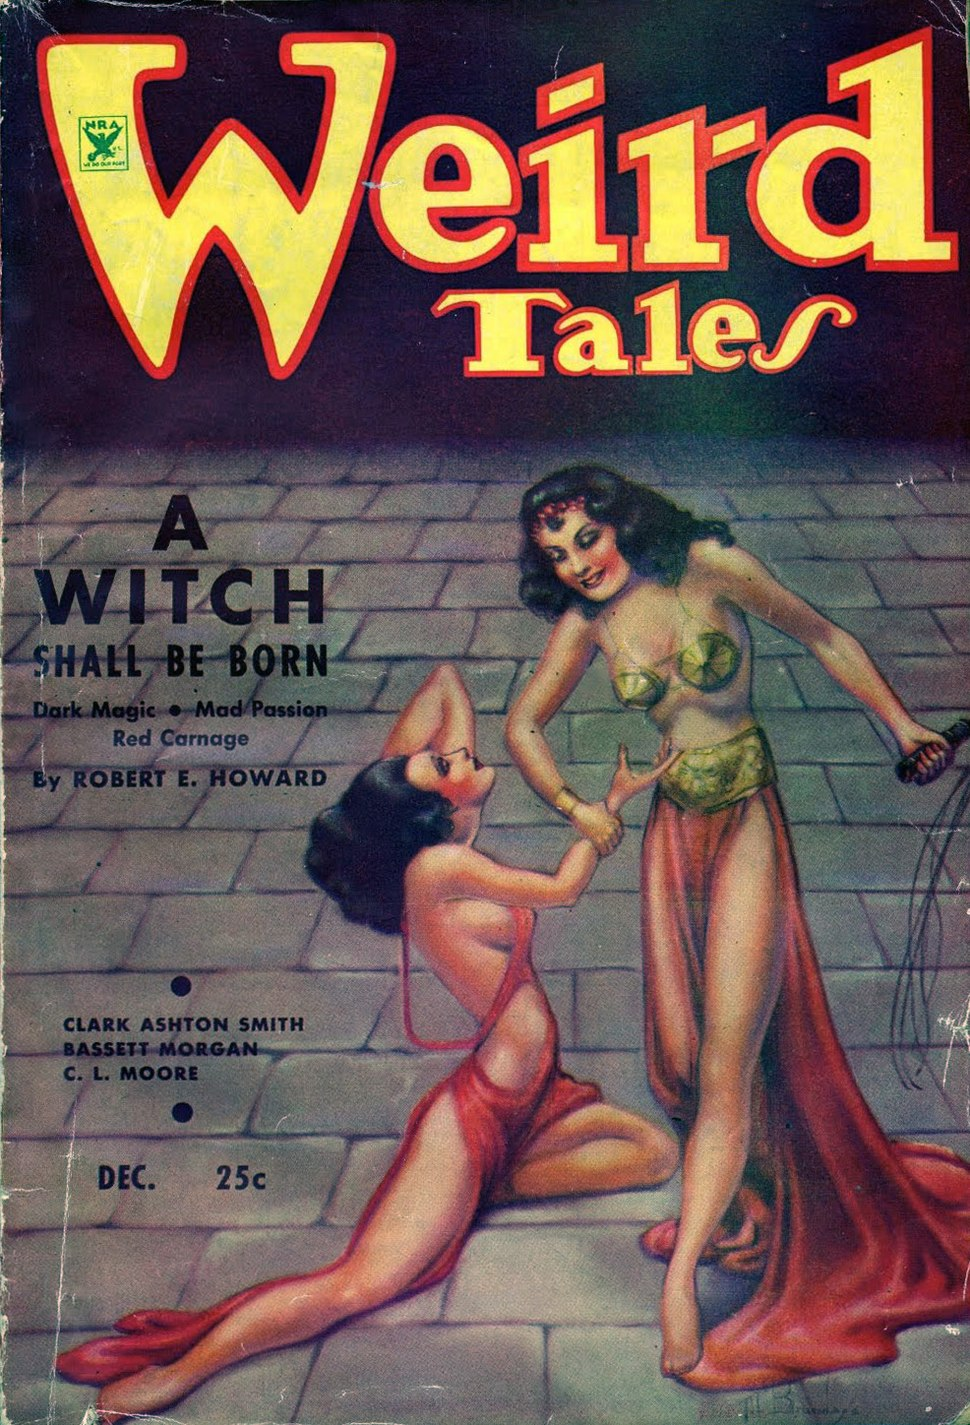 Weird Tales 1934-12 - A Witch Shall be Born